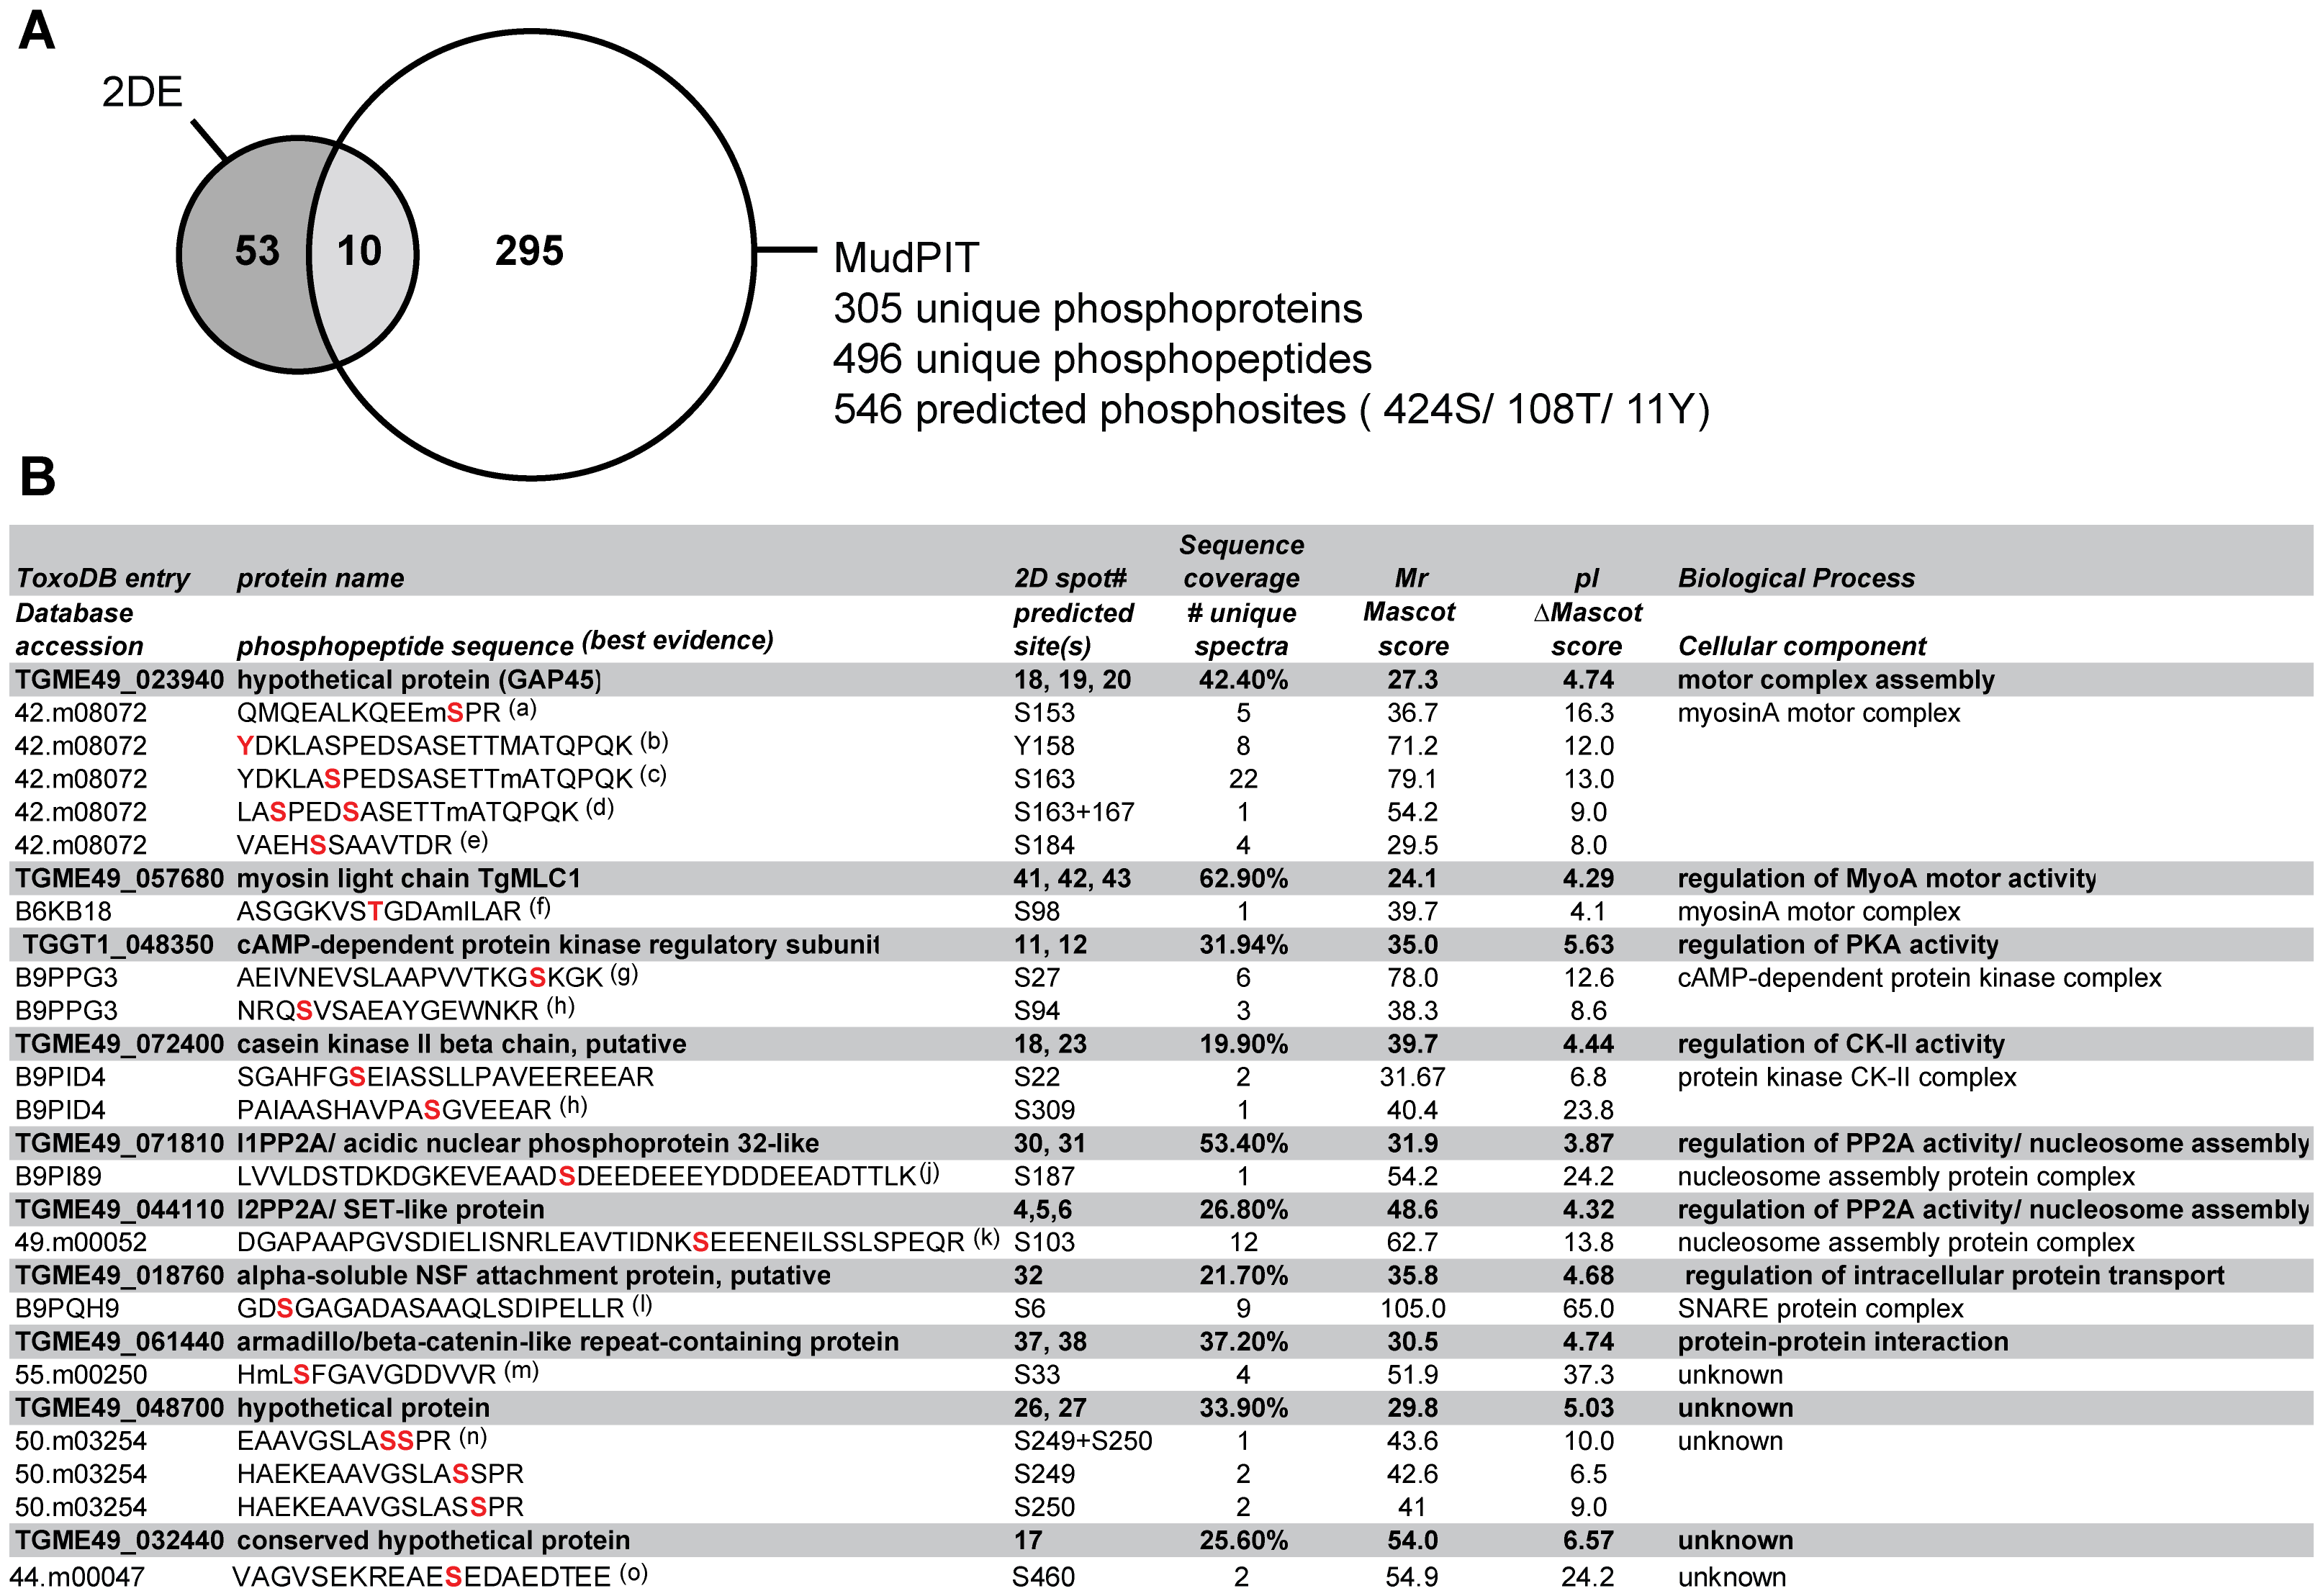 Functional annotation analysis of <i>Toxoplasma</i> phosphoproteins identified by MudPIT and comparison of proteomics strategies.